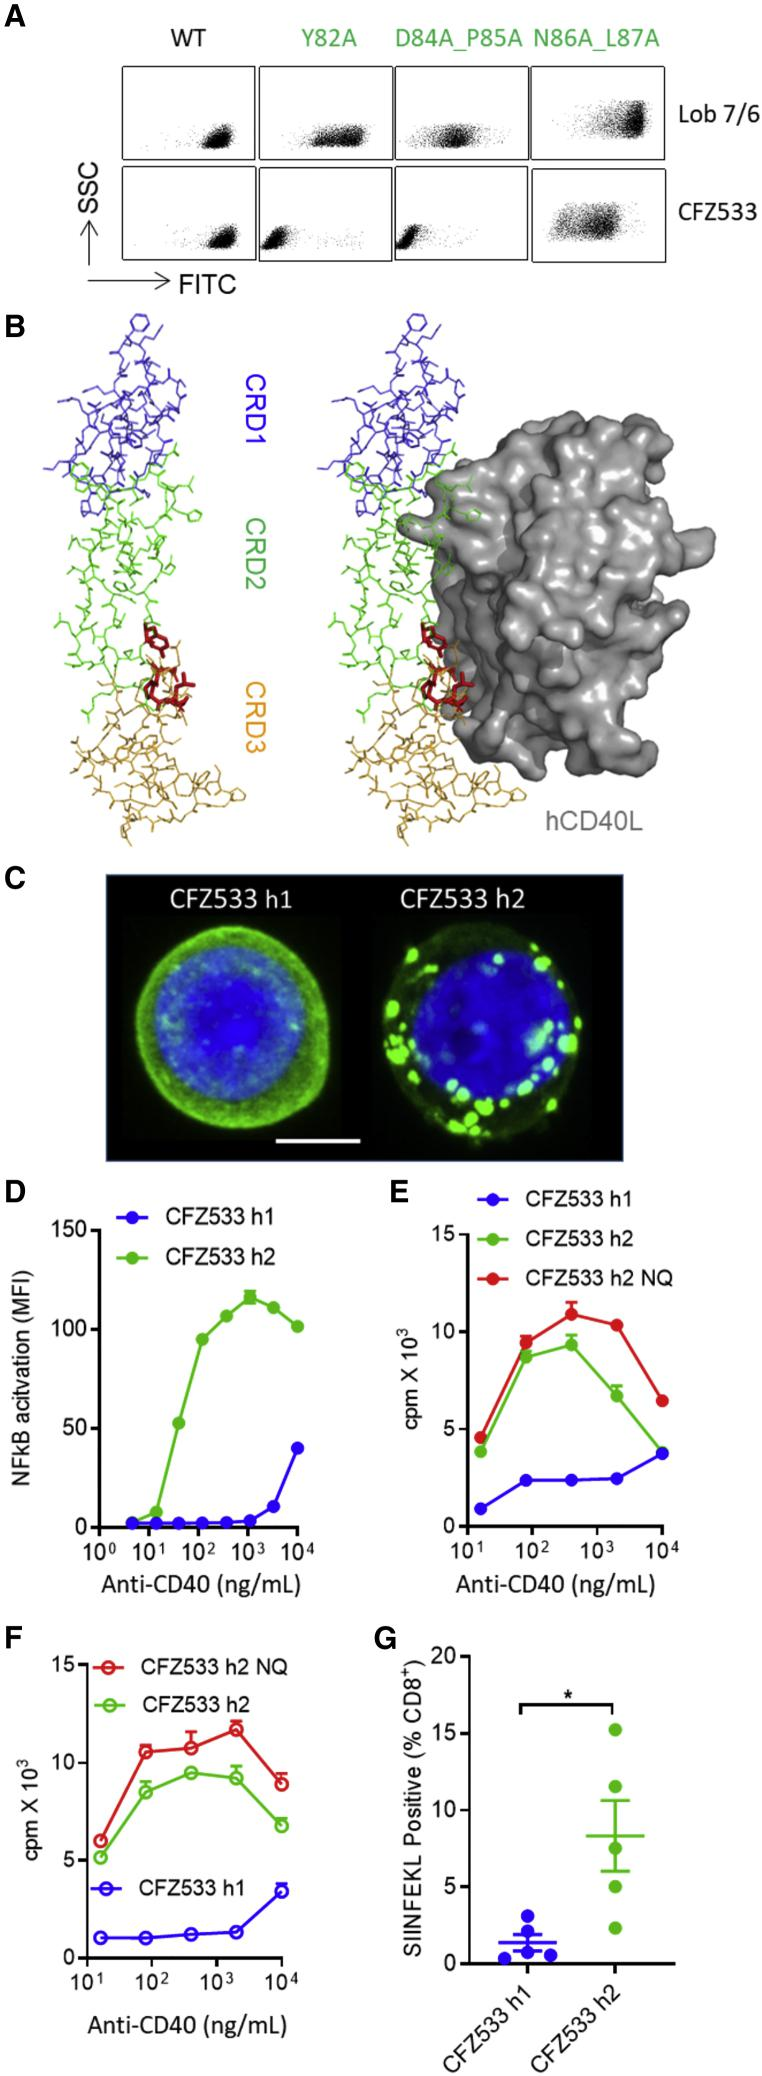 Antagonist CFZ533 Is Converted into an Agonist by Isotype Switching to hIgG2 (A) CHO-k1 cells expressing different hCD40 mutants were probed with anti-CD40 mAbs. Bound mAbs were detected by anti-mouse IgG-FITC. (B) Deduced epitope of CFZ533 is shown in red on a color-coded CD40 molecular scaffold (left) and displayed relative to the CD40/CD40L binding interface (right). The structure model is based on PDB: 3QD6 . (C) Jurkat cells stably transfected with human CD40EC-GFP were treated with 10 μg/mL CFZ533 h1 or CFZ533 h2 for 1 h at 37°C. Cells were then fixed, nuclear-stained using DAPI, and imaged using a Leica SP8 confocal microscope. z stack images shown. Blue, nucleus; green, human CD40-GFP. Scale bar, 4 μm. Image representative of at least ten images taken. (D) Jurkat NF-κB GFP reporter cells stably transfected with hCD40 were incubated with various concentrations of anti-CD40 mAbs for 8 h and the level of NF-κB activation was assessed by GFP expression using flow cytometry. Means ± SEM, n = 3, data representative of two experiments. (E) Purified splenic B cells from hCD40Tg mice were incubated with various concentrations of anti-CD40 mAbs for 4 days. Proliferation was measured by 3 H-thymidine incorporation. Means ± SEM, n = 3, data representative of three experiments. (F) Experiments the same as (E), splenic B cells from hCD40Tg/ Fcgr2b −/− mice were used. Means ± SEM, n = 3, data representative of three experiments. (G) 1 × 10 5 OTI cells were adoptively transferred into hCD40Tg mice 1 day before treatment with 100 μg anti-CD40 mAbs as indicated. Mice were bled on day 5 and SIINFEKL + cells were quantified as a percentage of total CD8 + T cells. Means ± SEM, n = 5, each dot represents one mouse, data representative of two experiments. Two-tailed, non-paired Student's t test, ∗ p